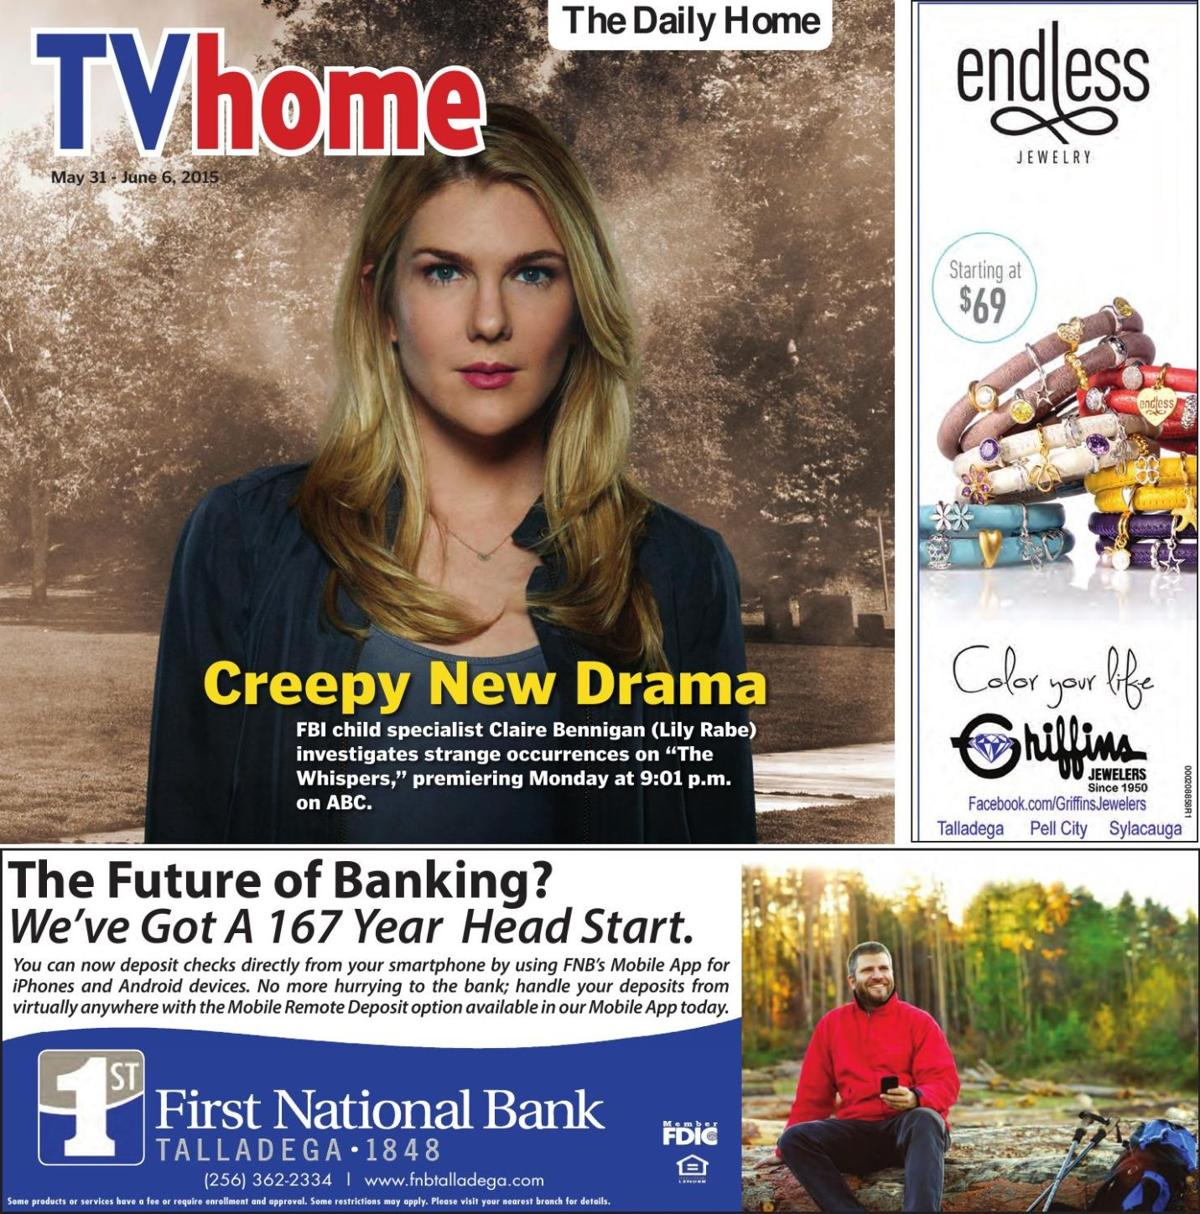 Https Www Annistonstar Com The Daily Home